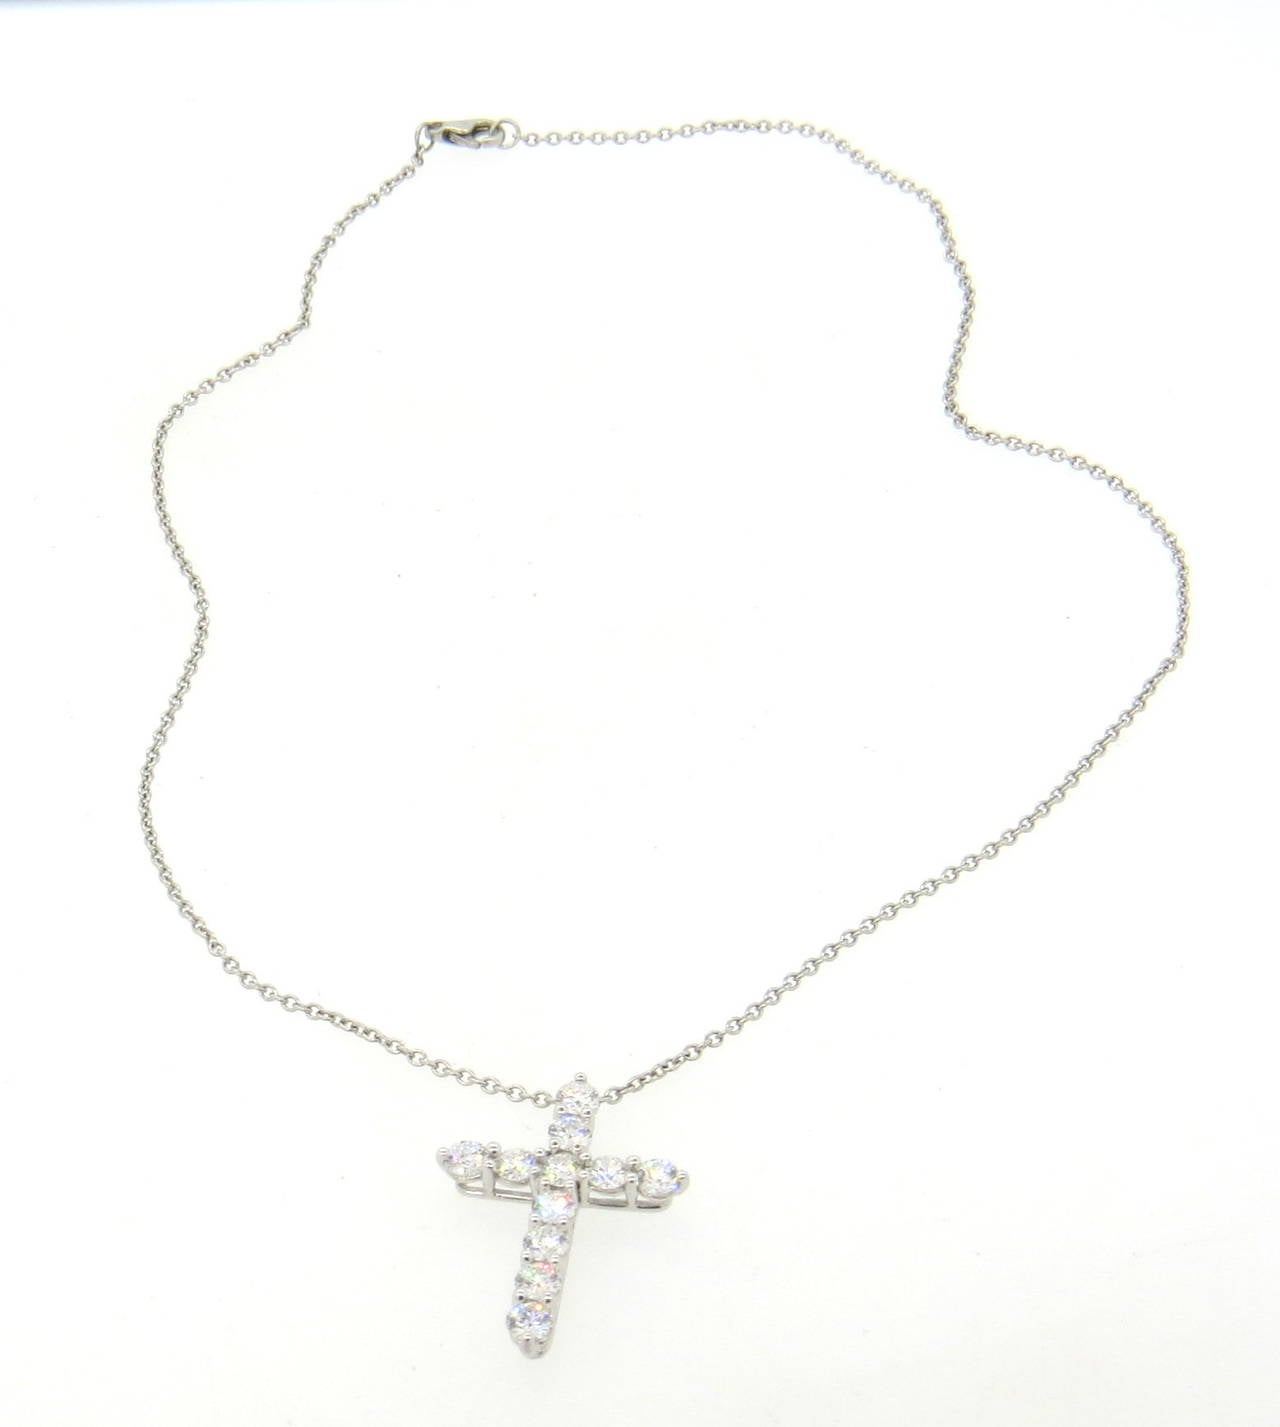 "A platinum cross pendant set with approximately 2.00ctw of VS/G-H diamonds on a 15"" chain.  The pendant measures 28mm x 21mm and weighs 7.6 grams with chain."